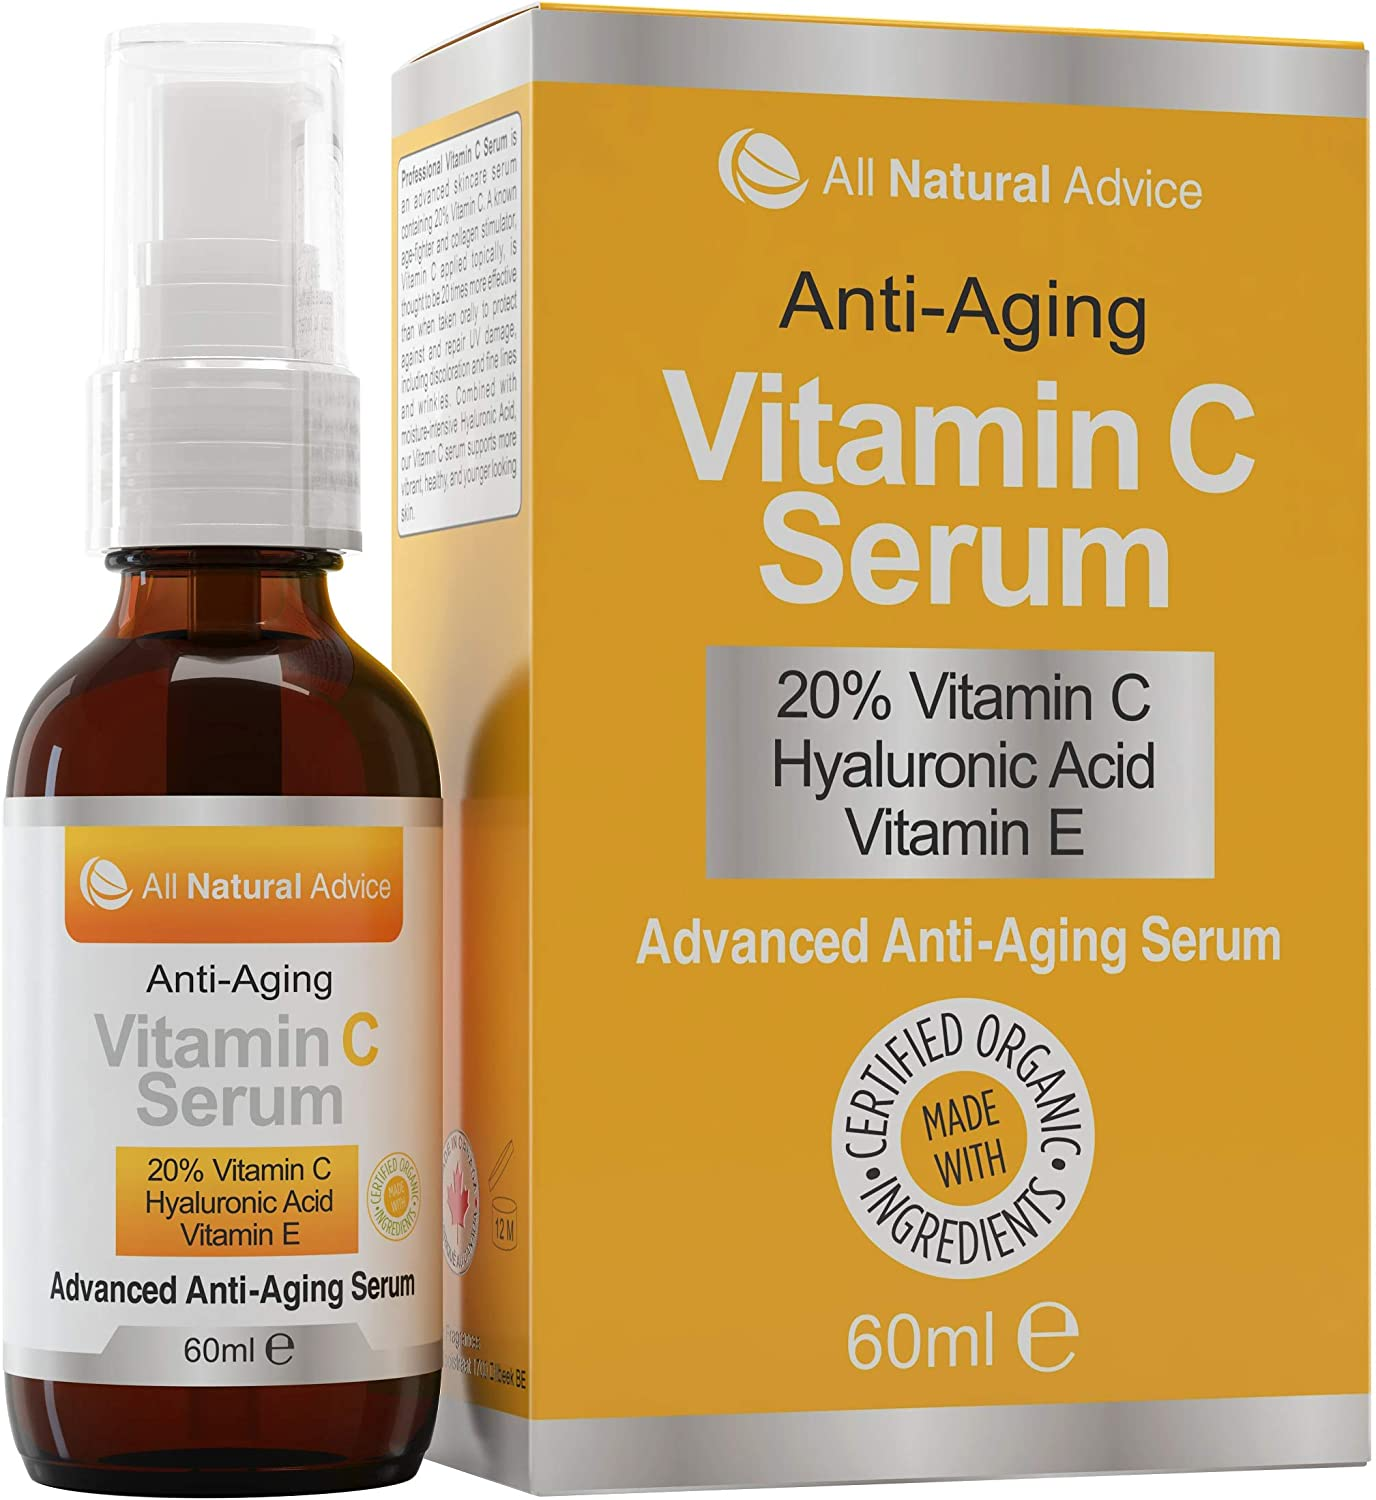 20 Vitamin C Serum 60 Ml Made In Canada Certified Organic 11 Hyaluronic Acid Vitamin E Moisturizer Collagen Boost Reverse Skin Aging Sun Spots And Wrinkles Use With Derma Roller Amazon Co Uk Beauty